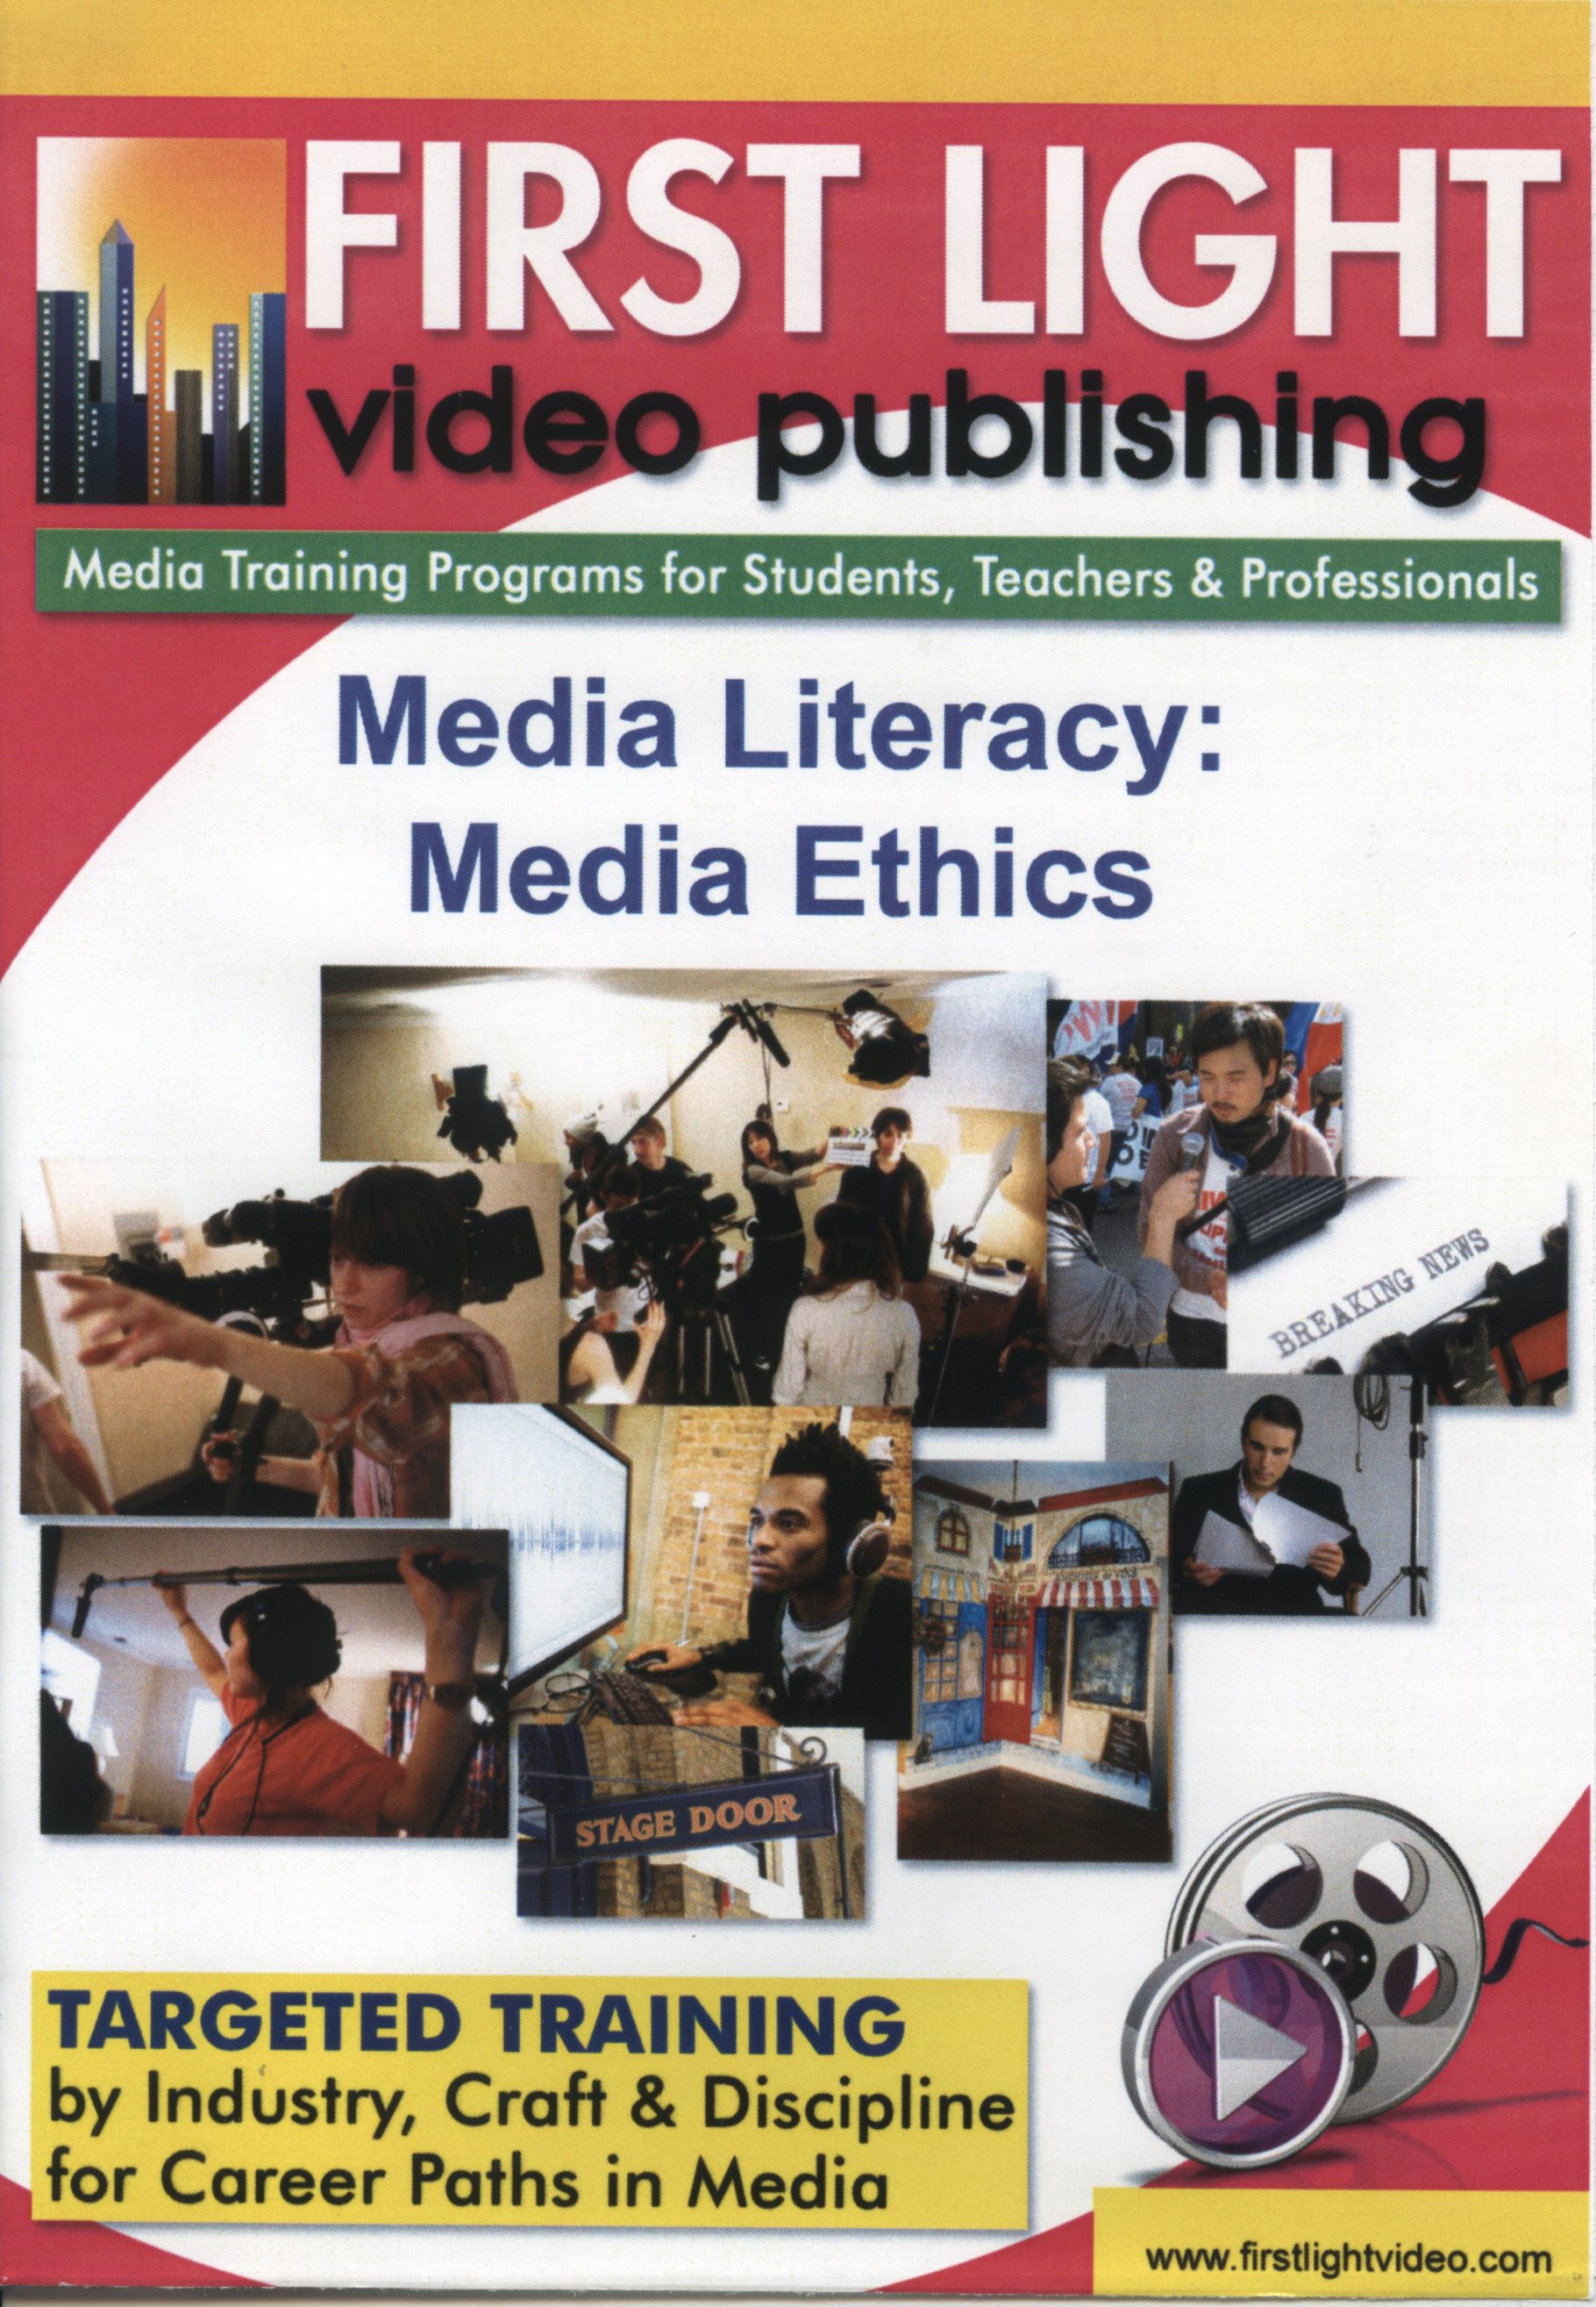 Media literacy media ethics = 媒體素養: 道德議題 /